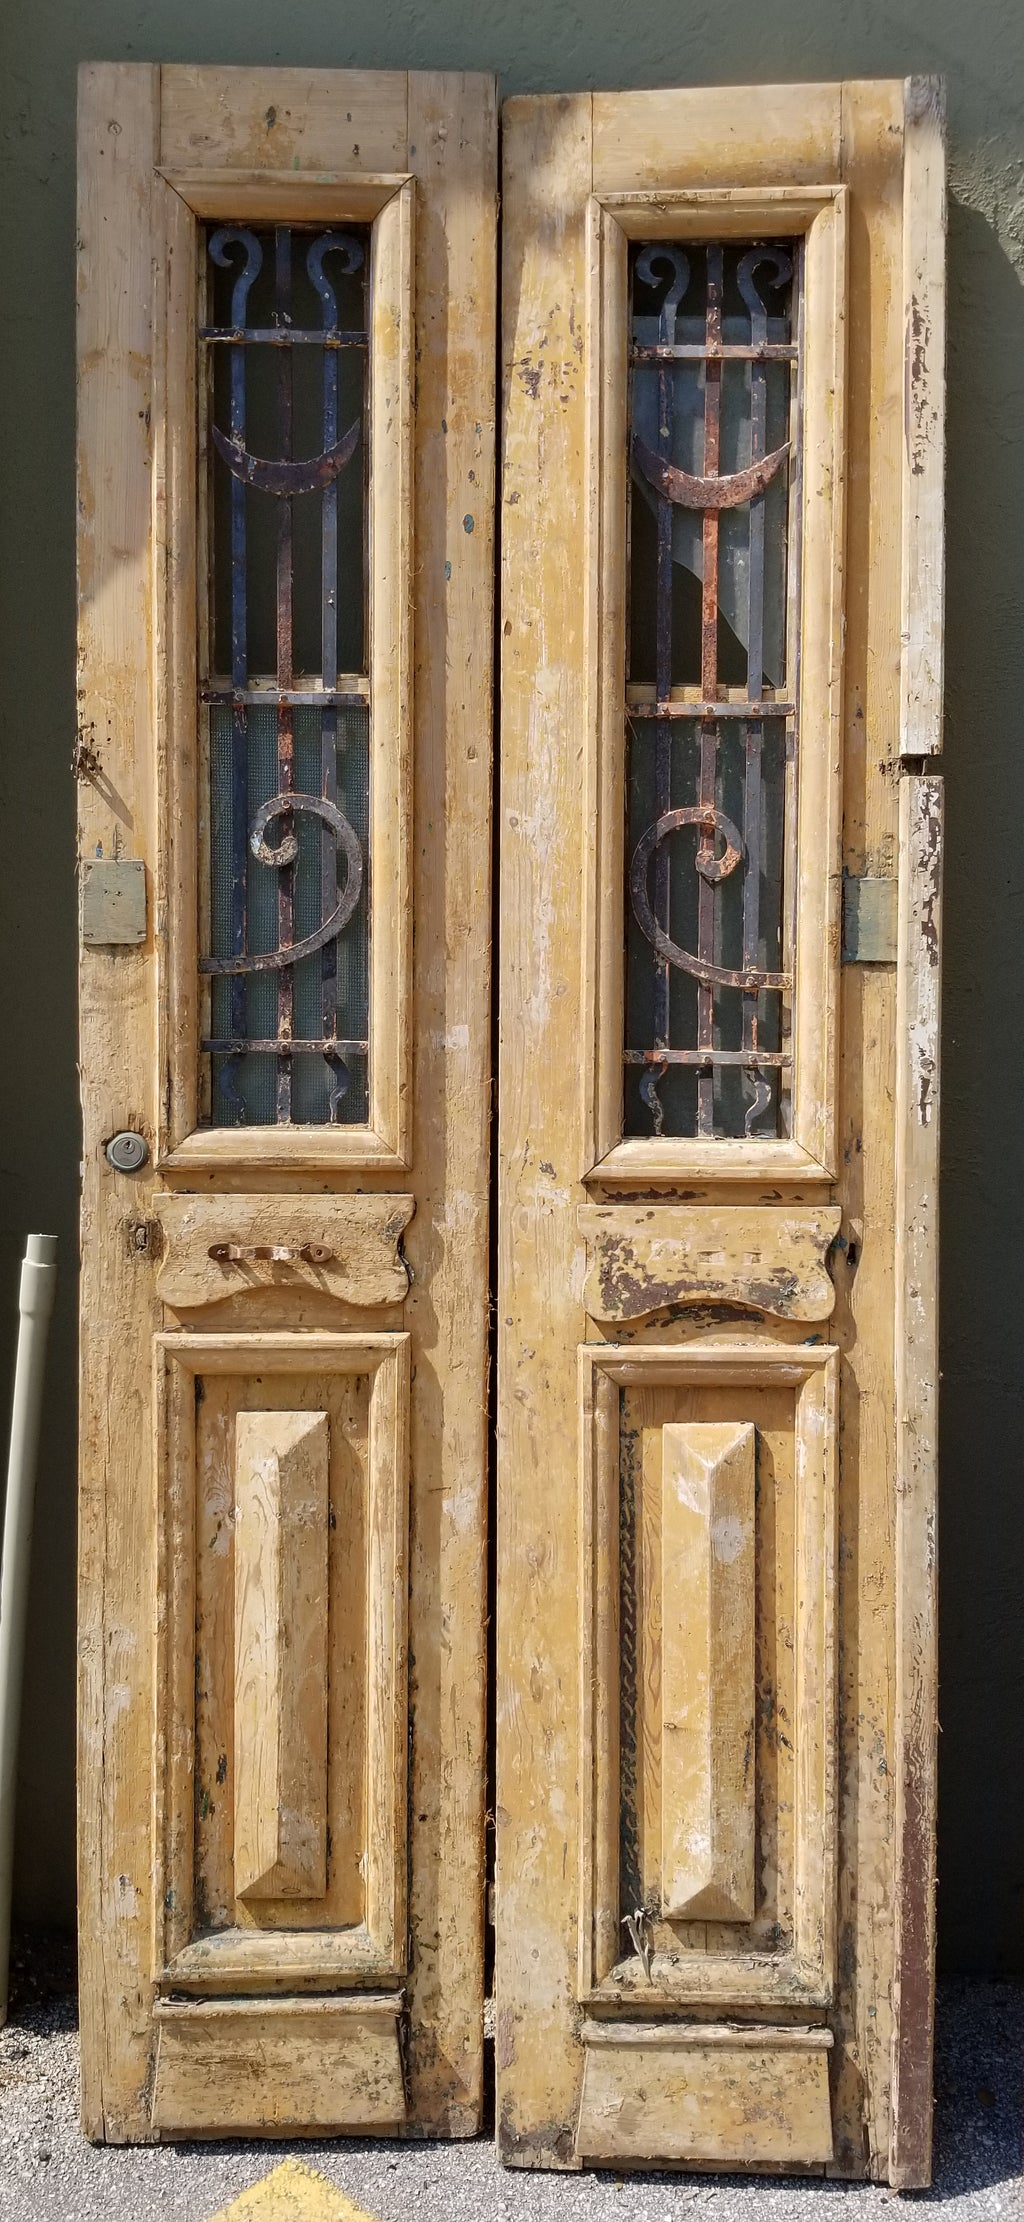 Antique Solid Wood Door Set - iron detail window